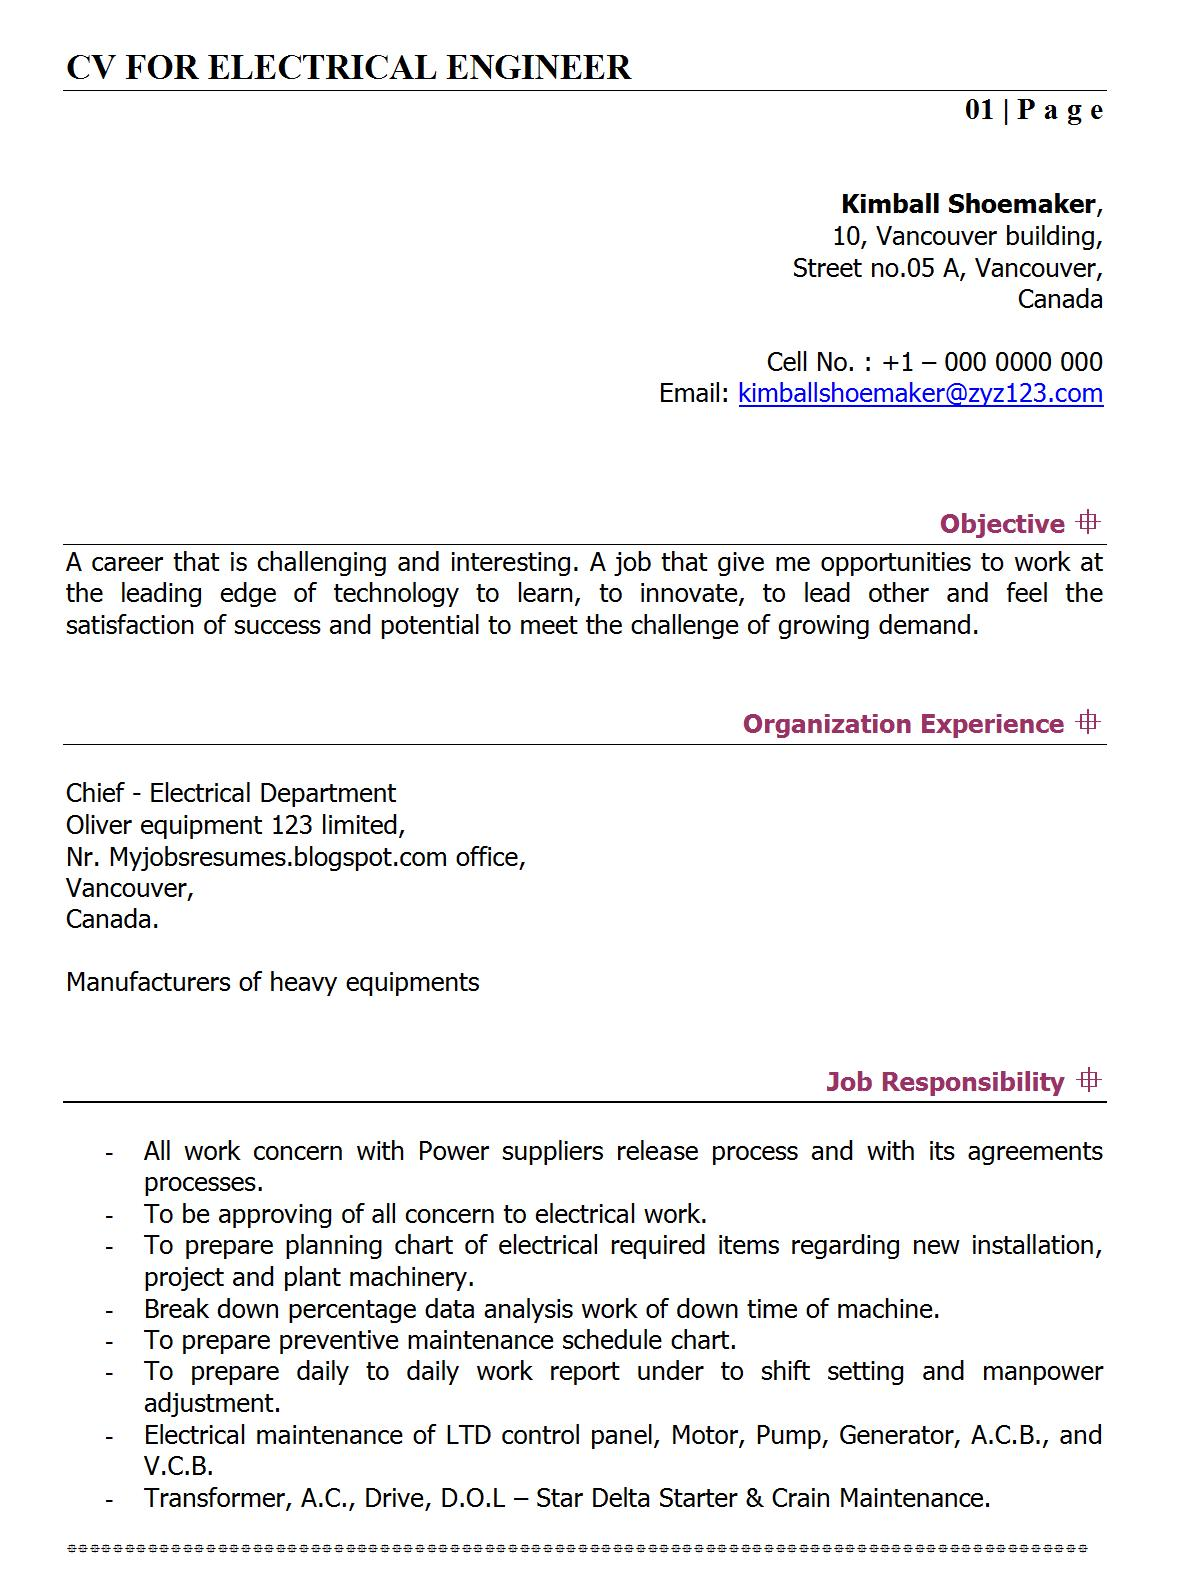 resume format electrical engineer online resume format resume format electrical engineer electrical engineer resume example electrical engineers resume 01 electrical engineers resume 02